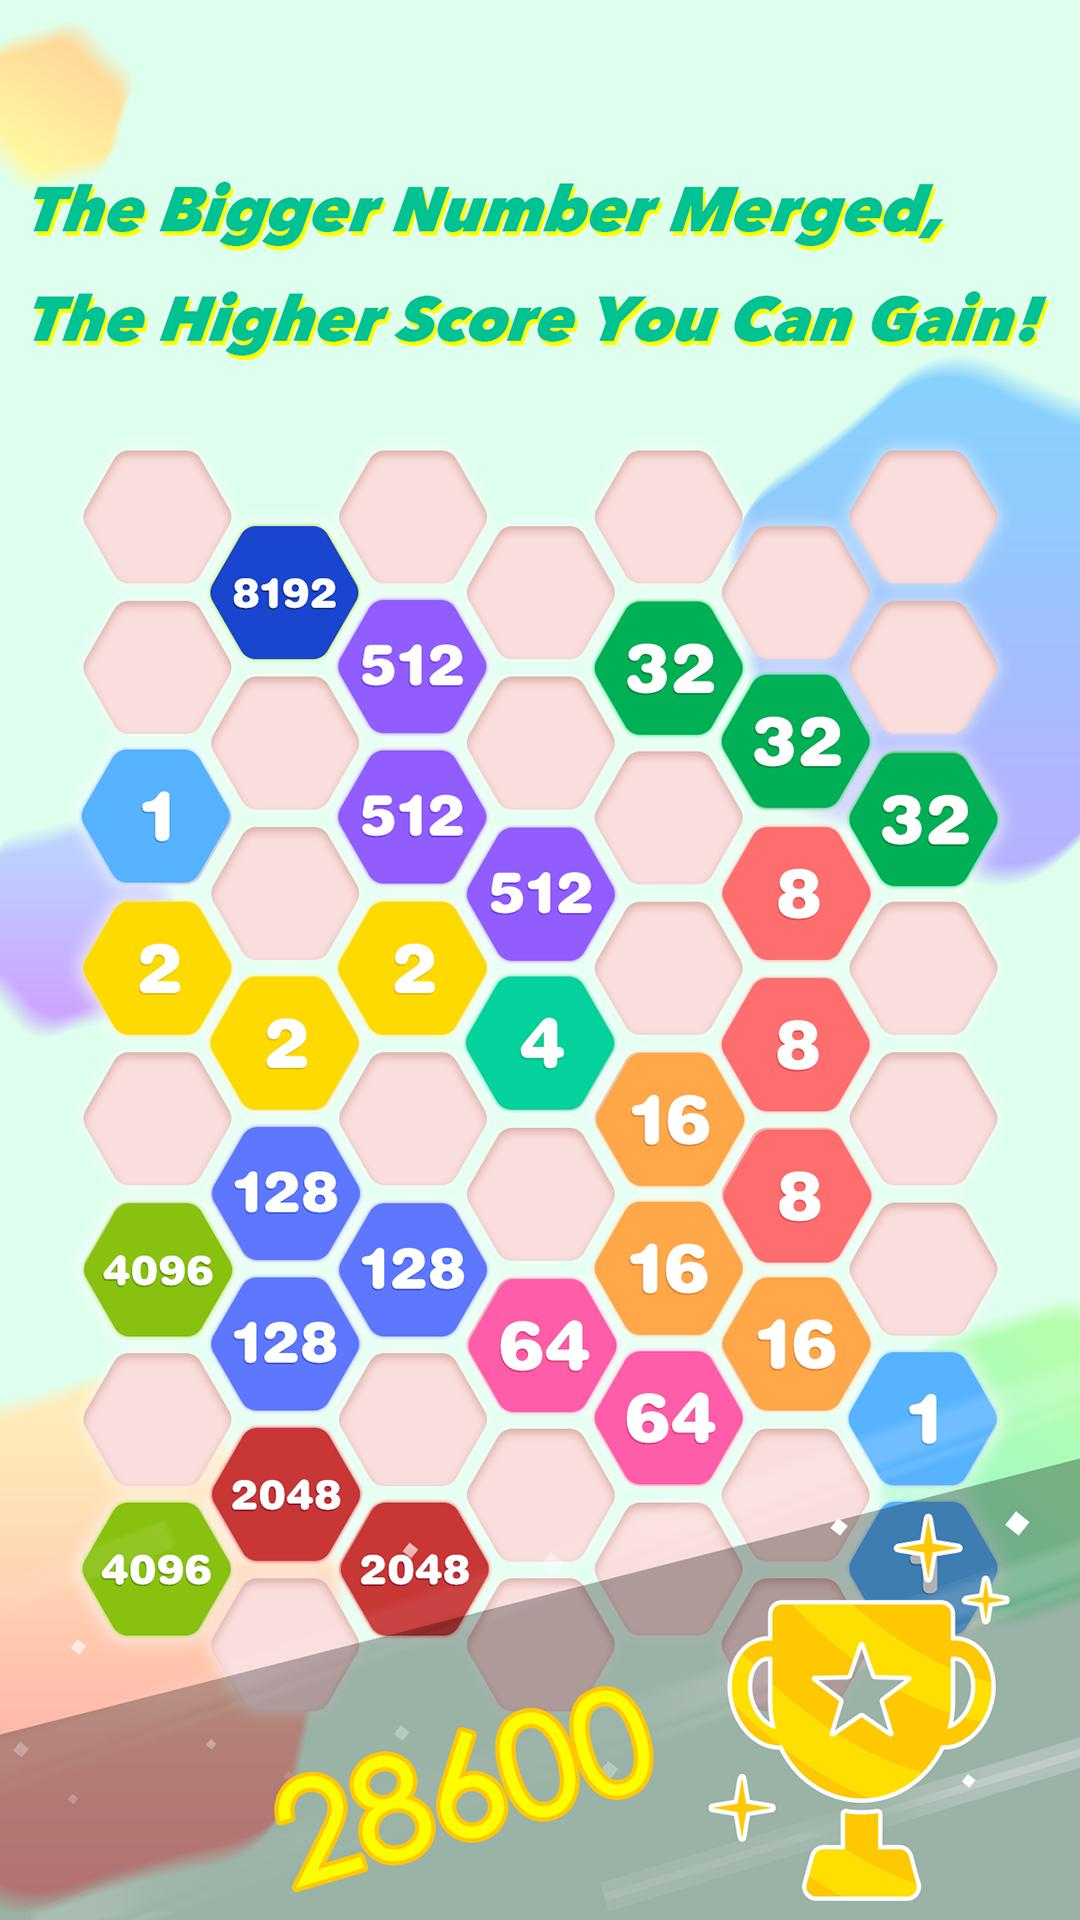 200x200 for Android   APK Download